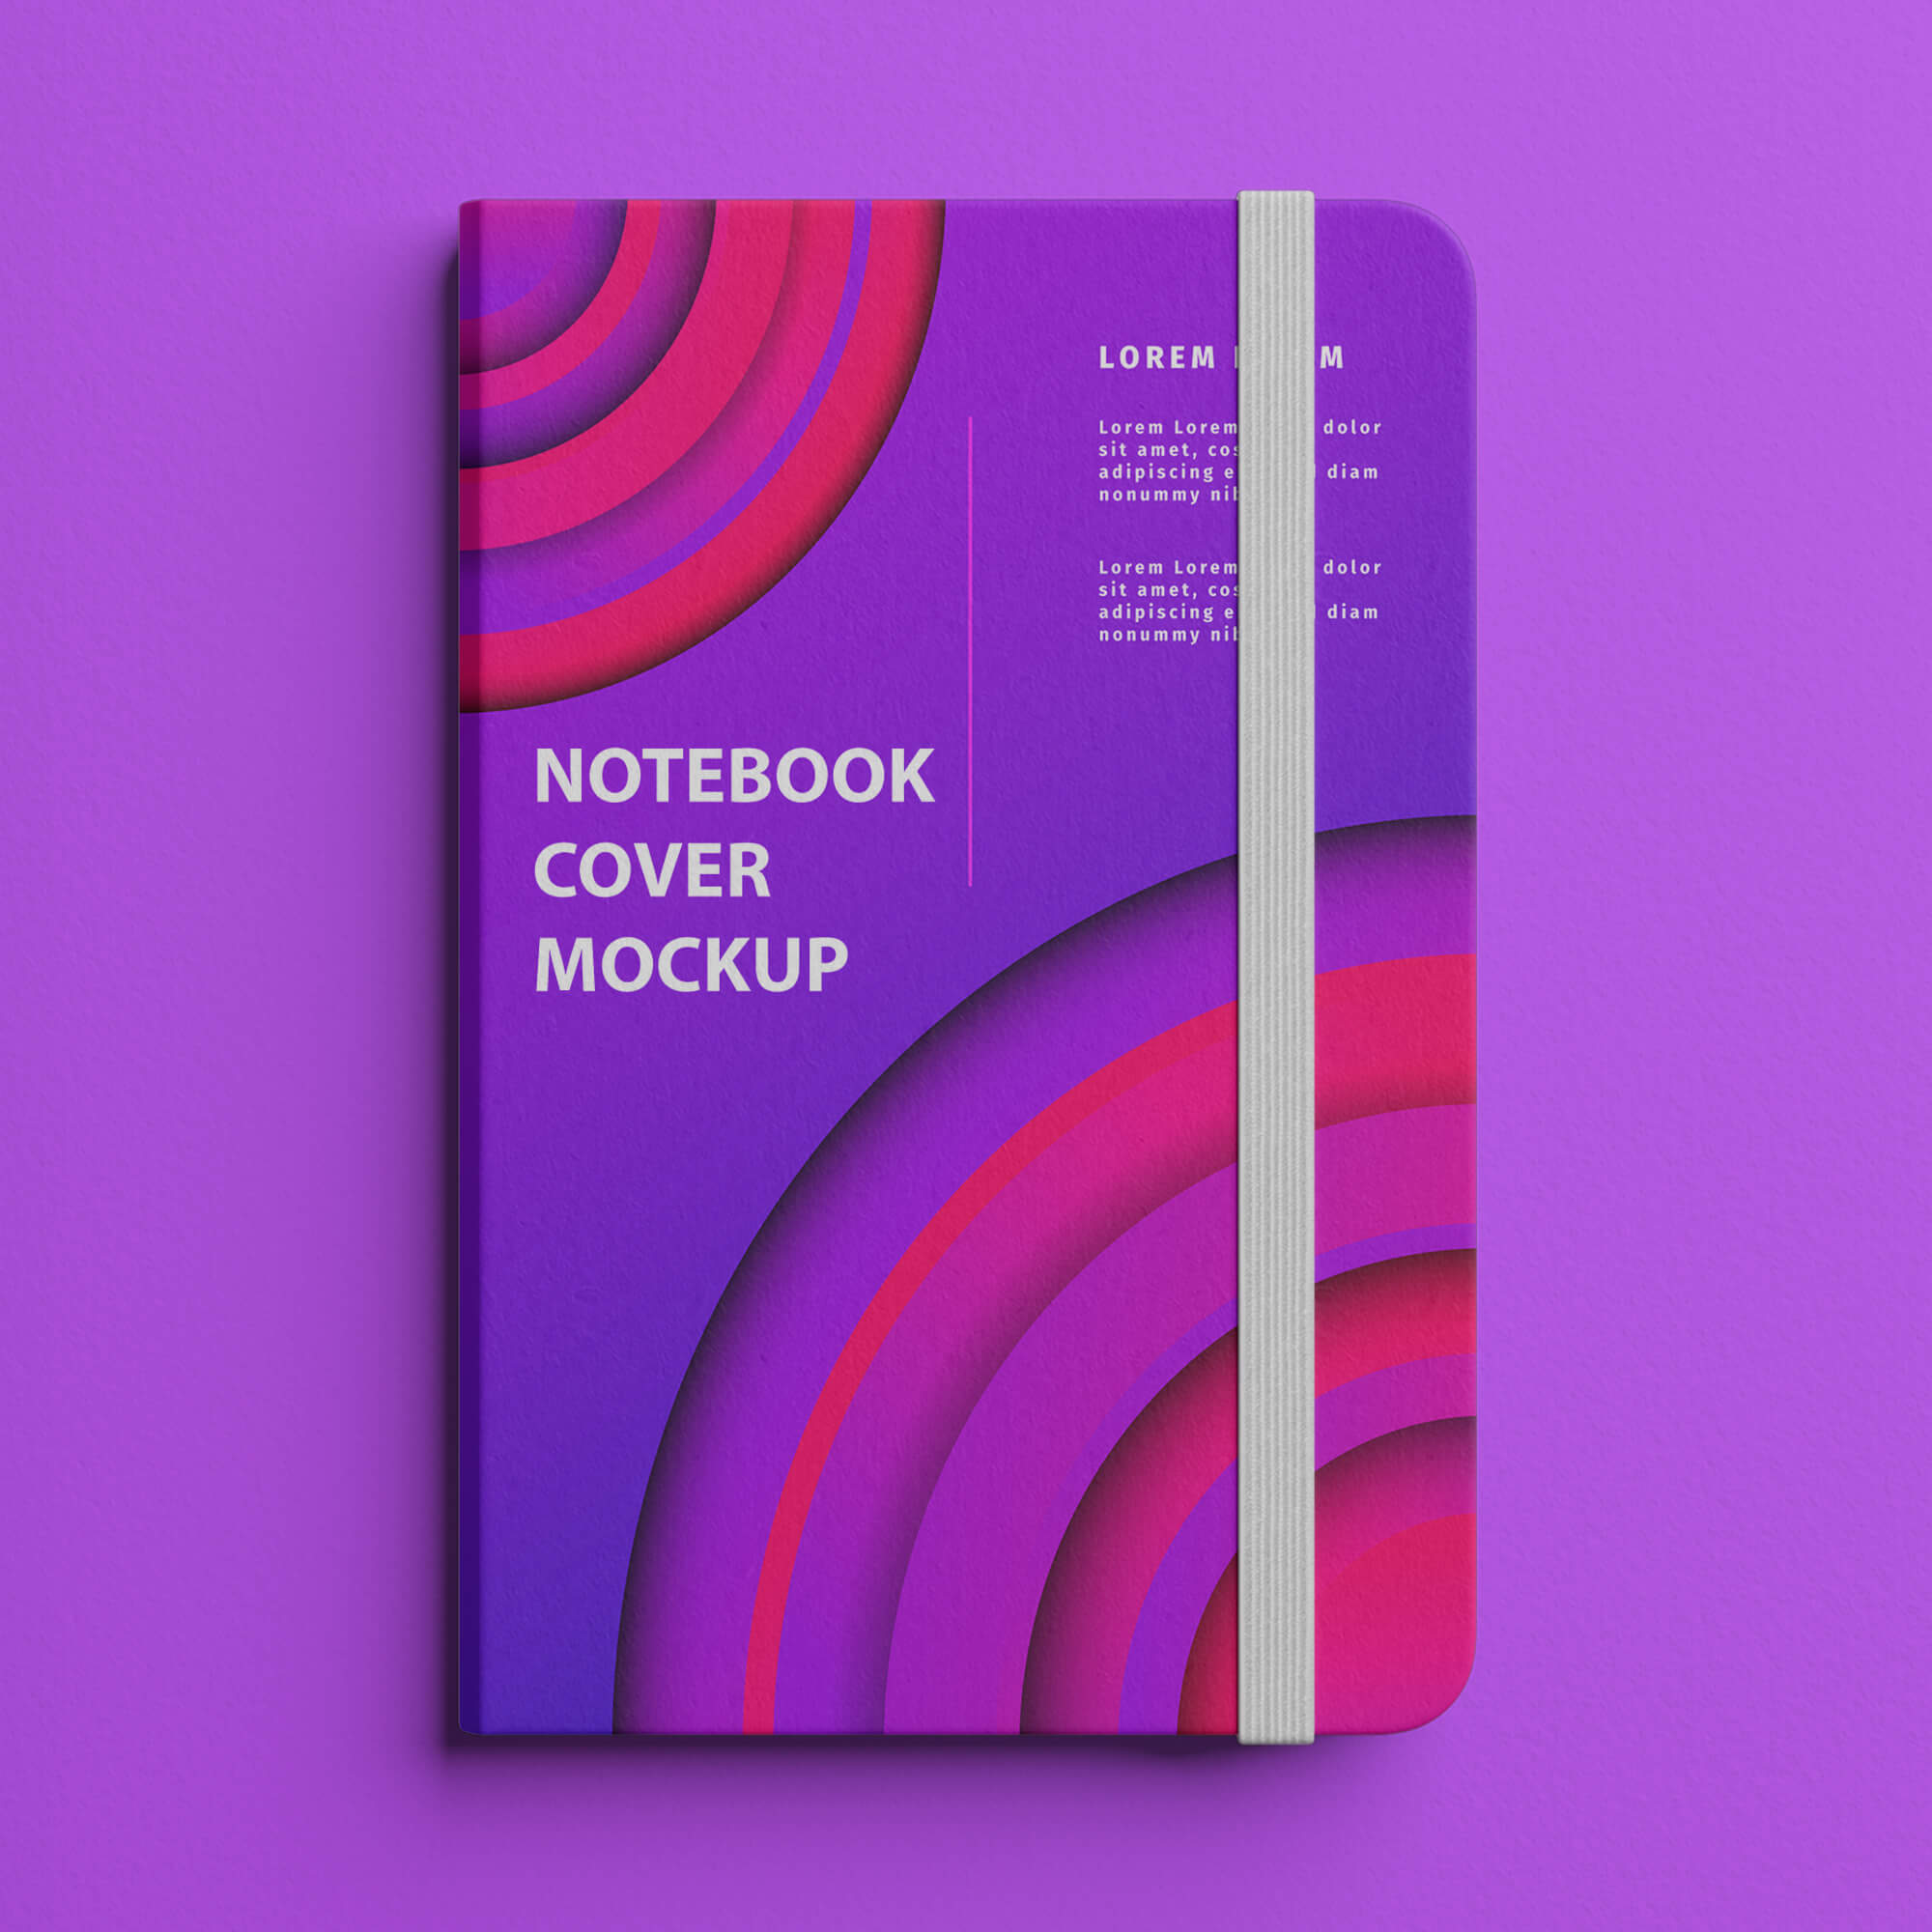 Design Free Notebook Cover Mockup PSD Template